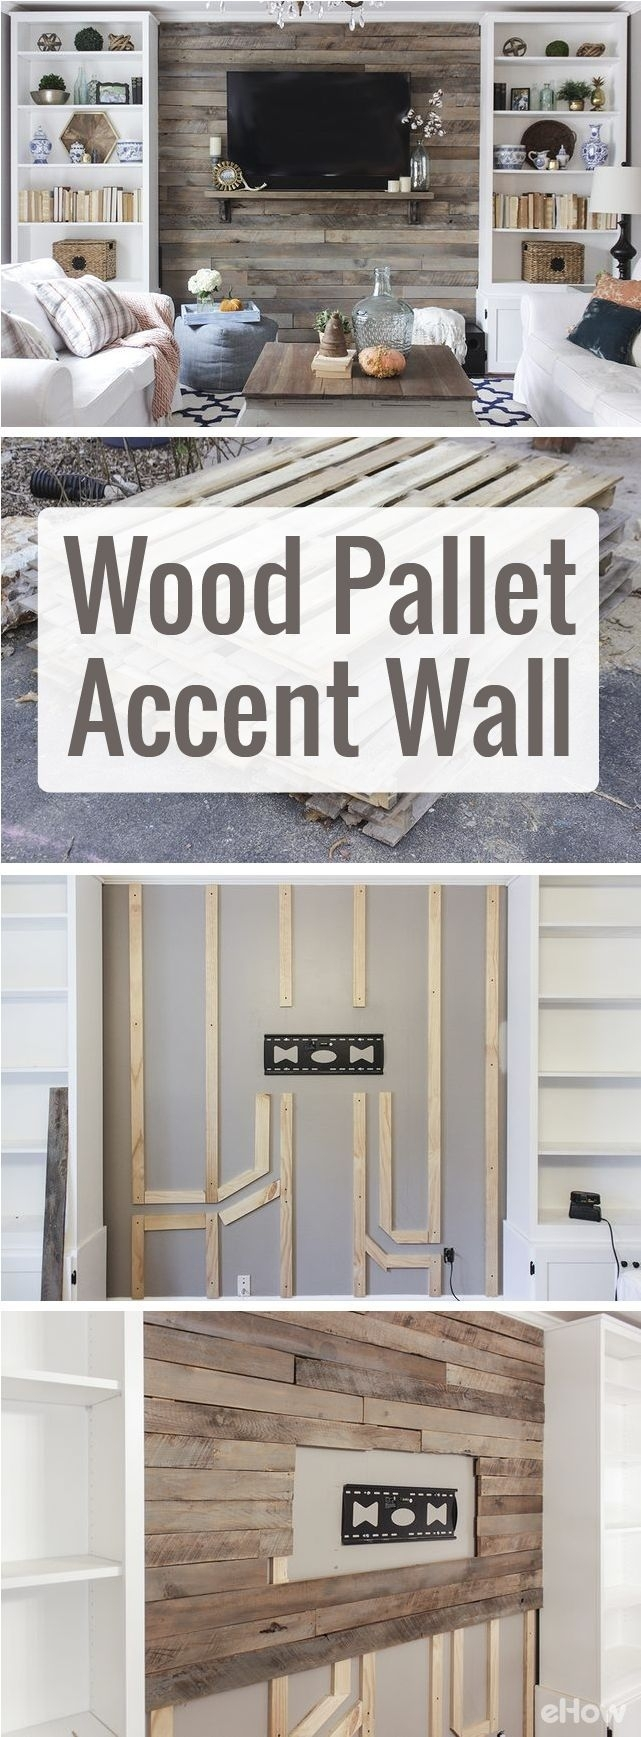 How To Build A Pallet Wall | Project Nursery, Nursery Design And For Most Current Wall Accents With Pallets (View 6 of 15)